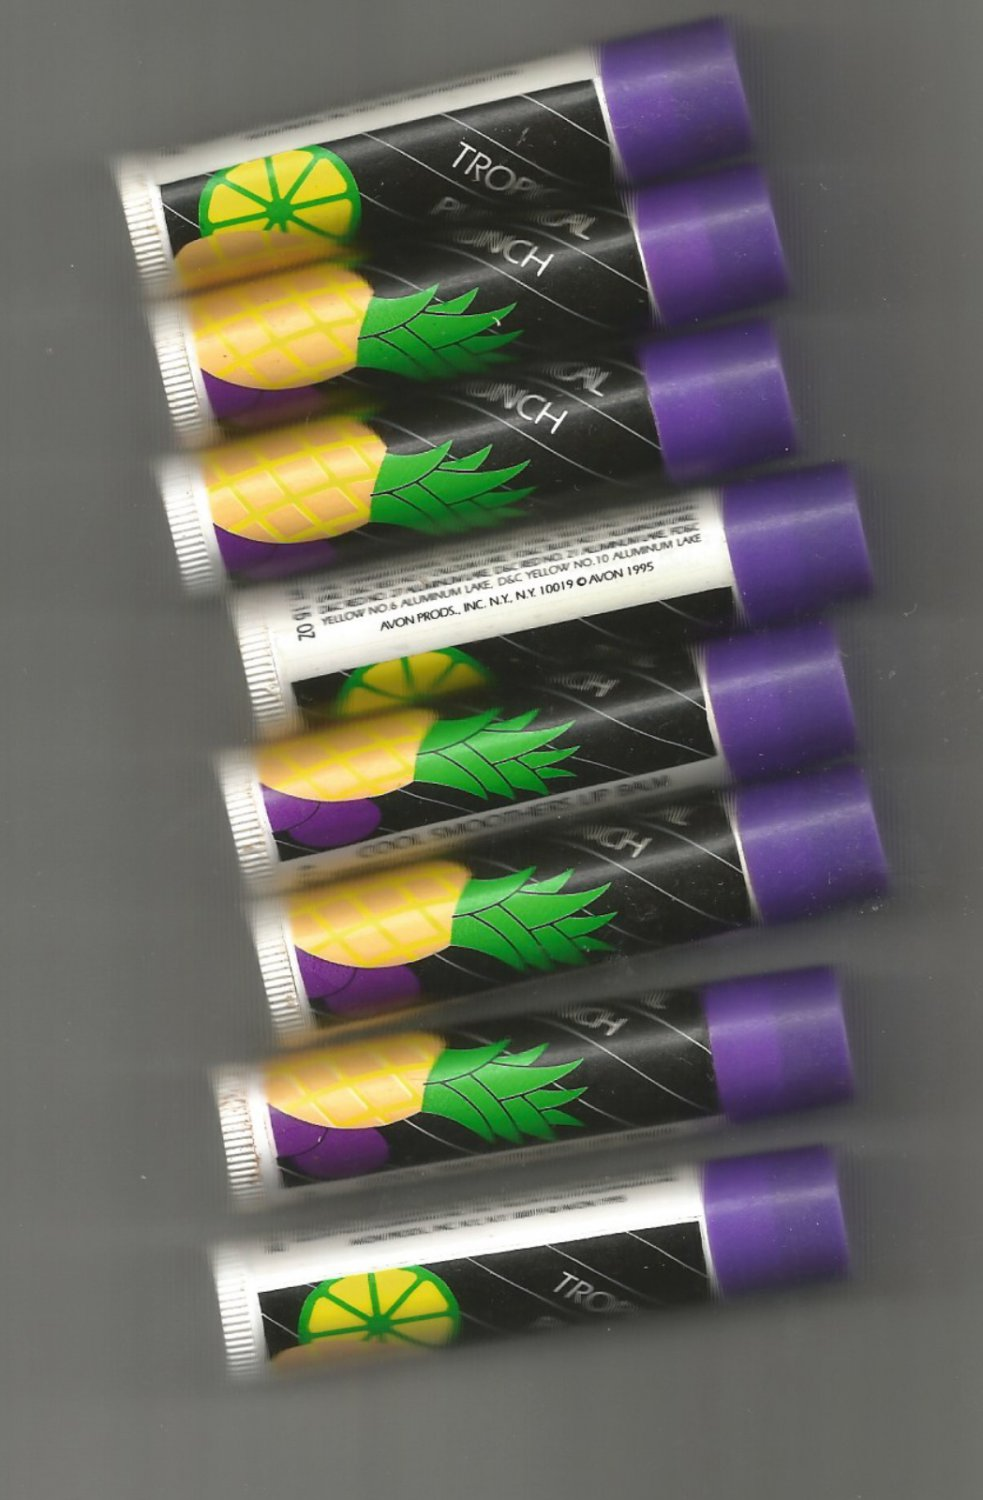 8 Avon  Cool Smoothers Lip Balm- Tropical Punch  - VINTAGE